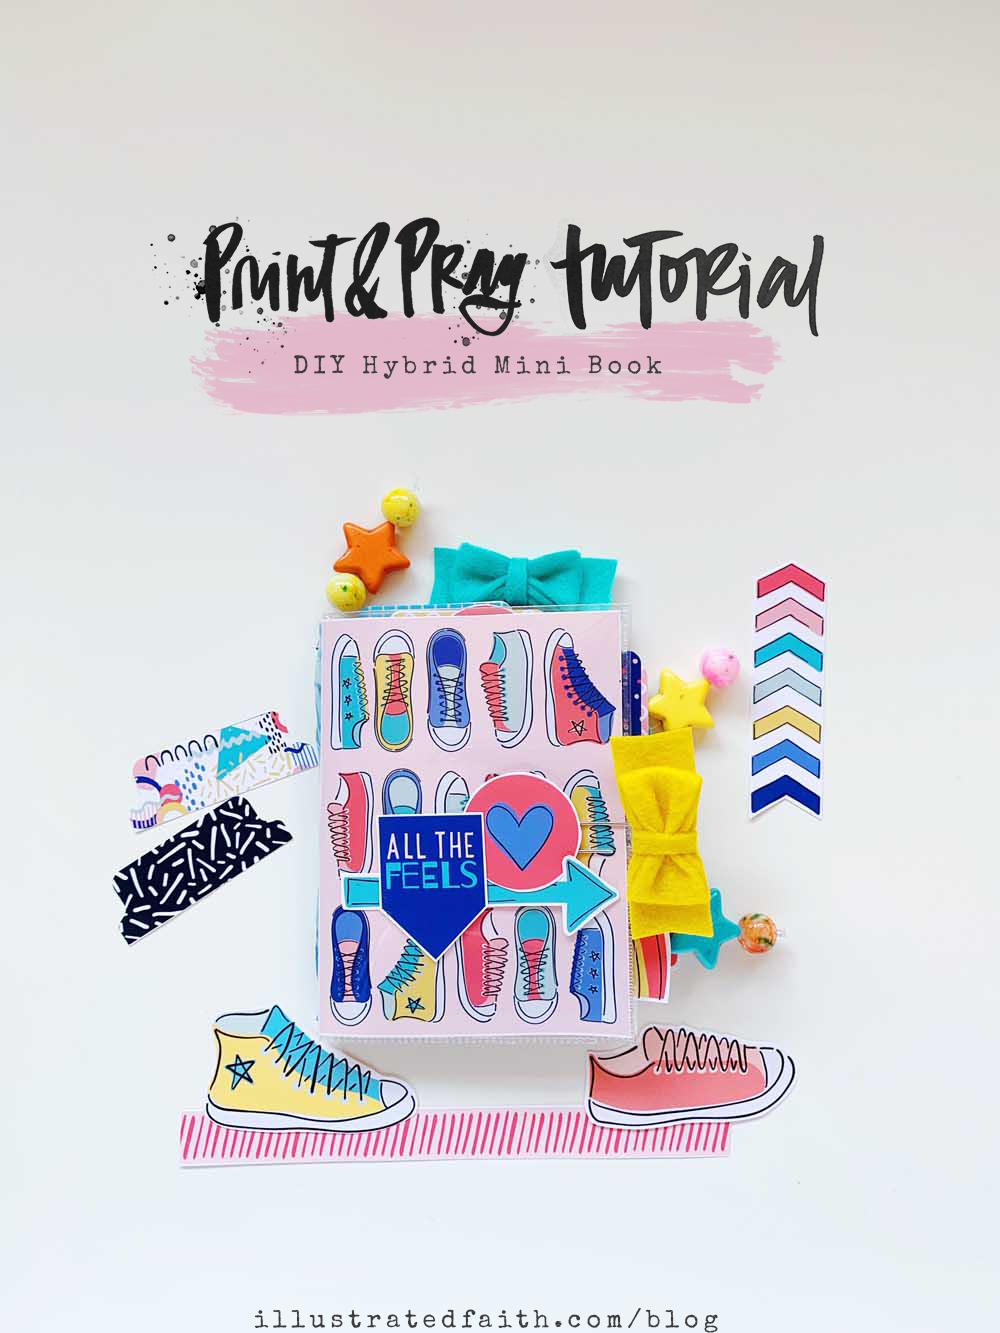 Hybrid Mini Book Tutorial with Print and Pray Shop Supplies by Cristin Howell using digital printables | All The Feels - Mixed Feelings